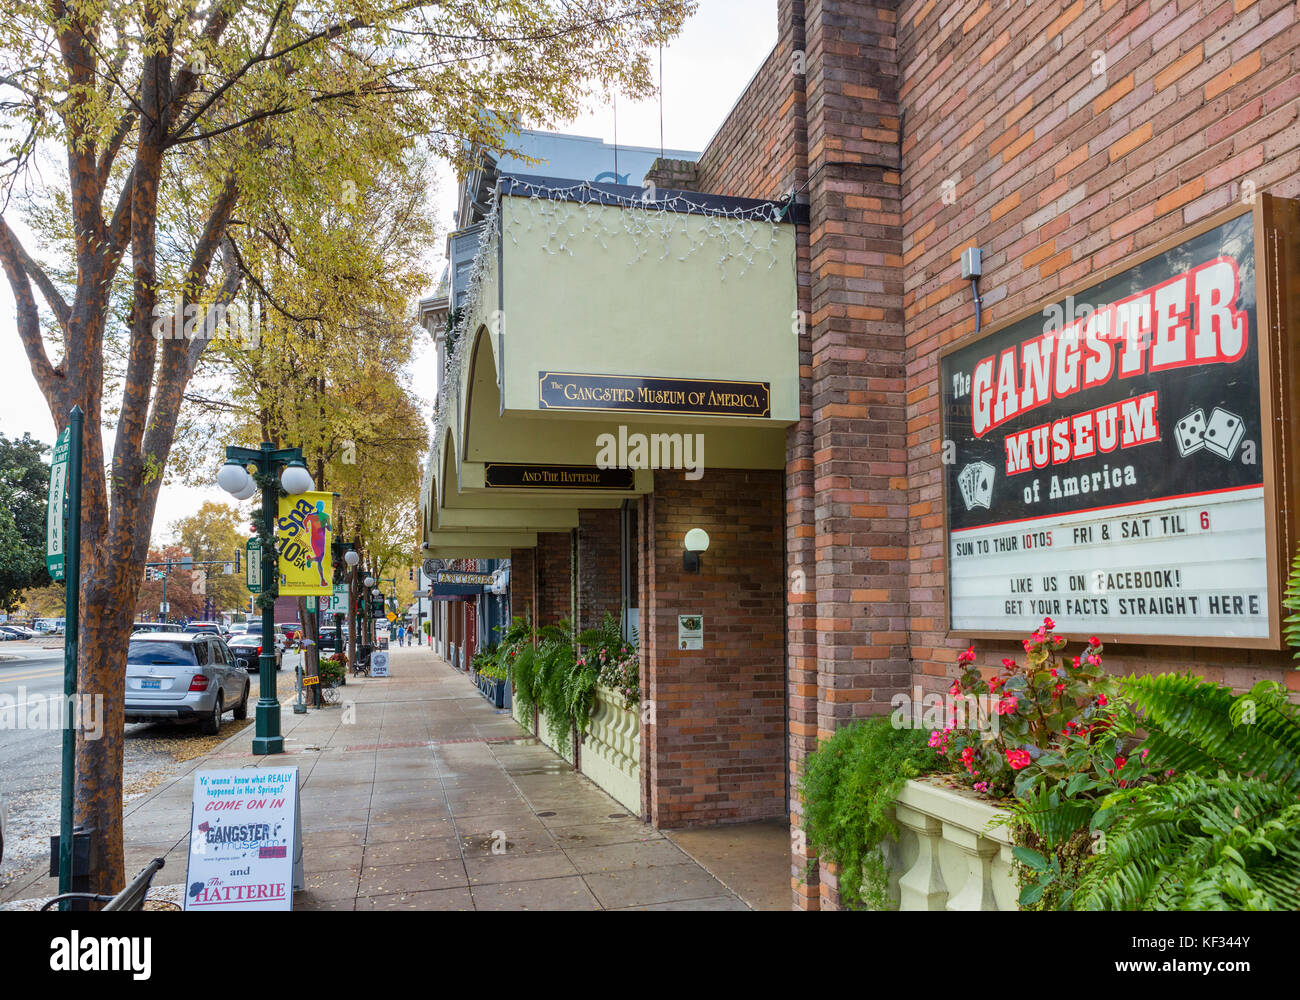 The Gangster Museum of America on Central Avenue ('Bathhouse Row')in downtown Hot Springs, Arkansas, USA - Stock Image